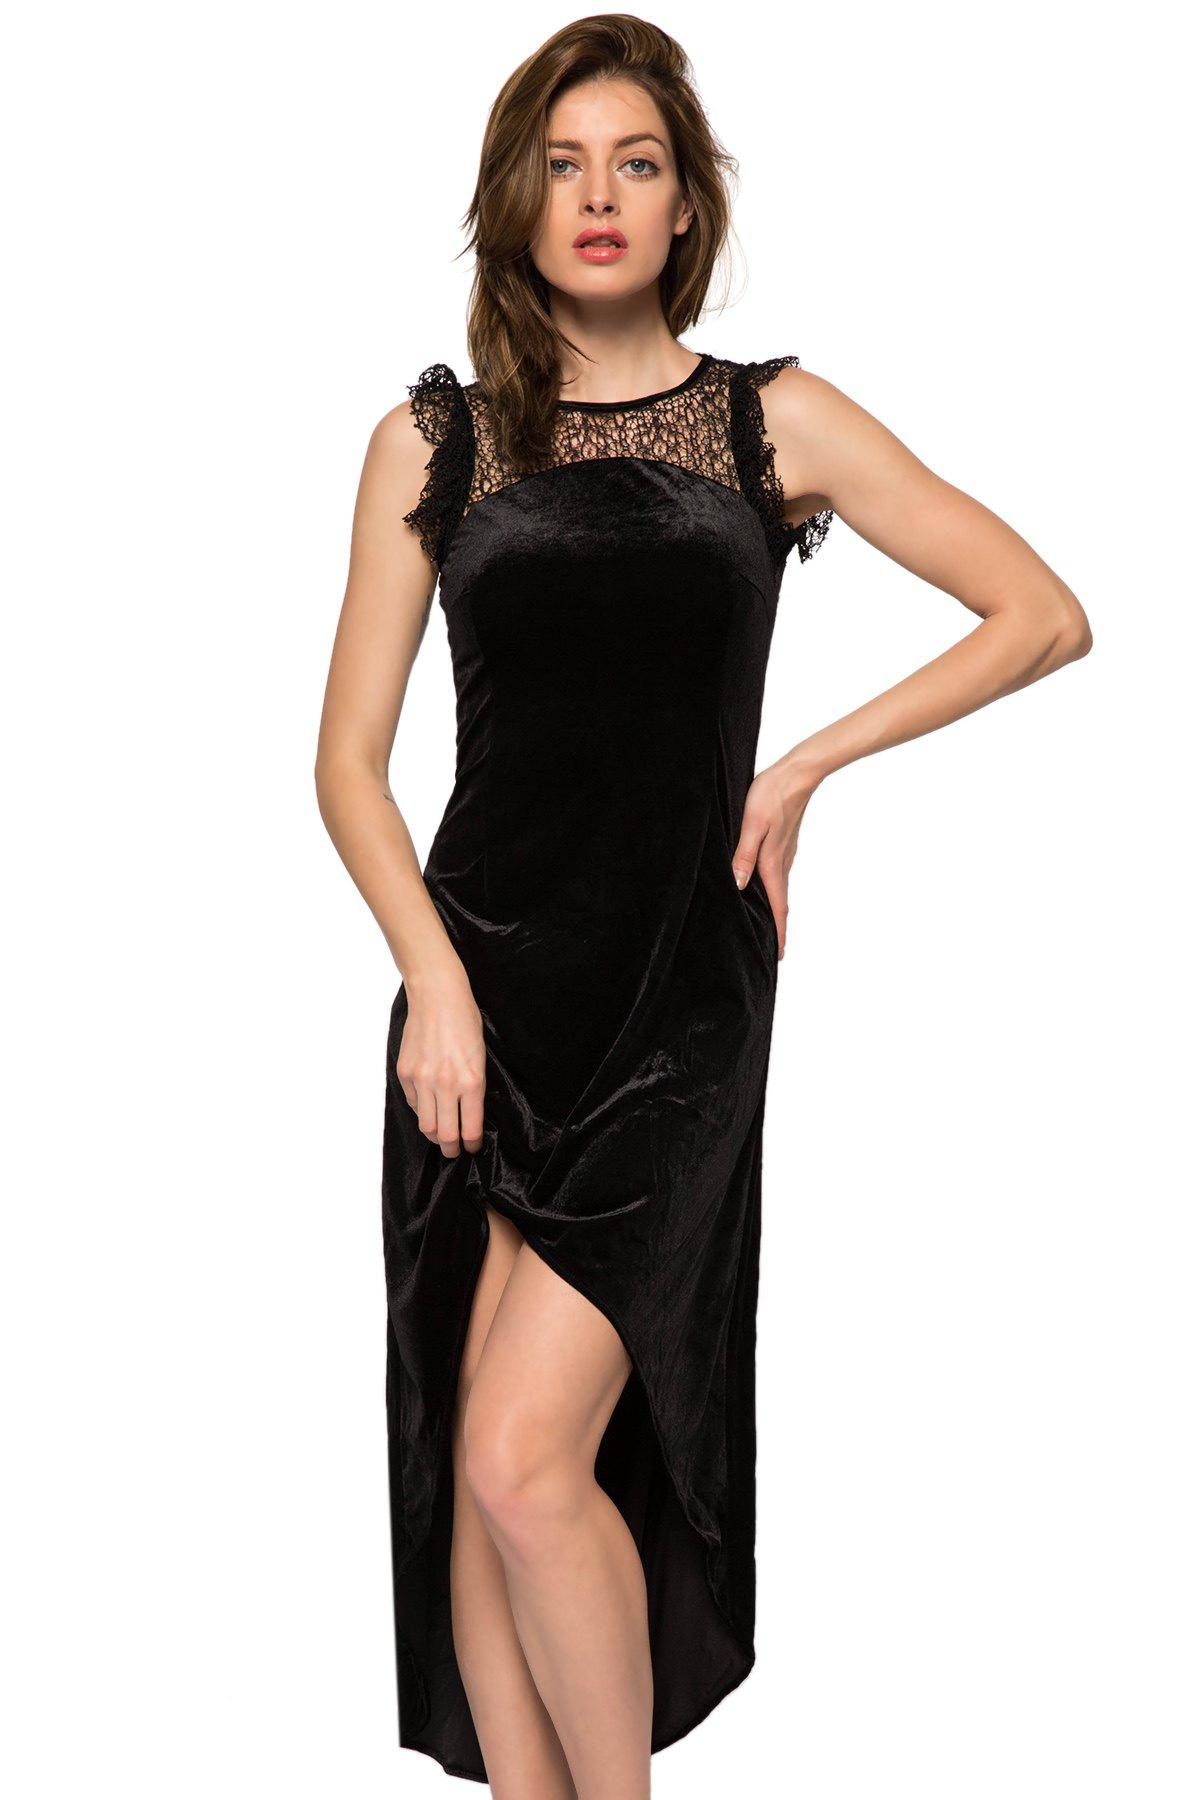 Fashionable Round Collar Sleeveless Lace Splicing High-low Hem Women's Dress - BLACK 2XL